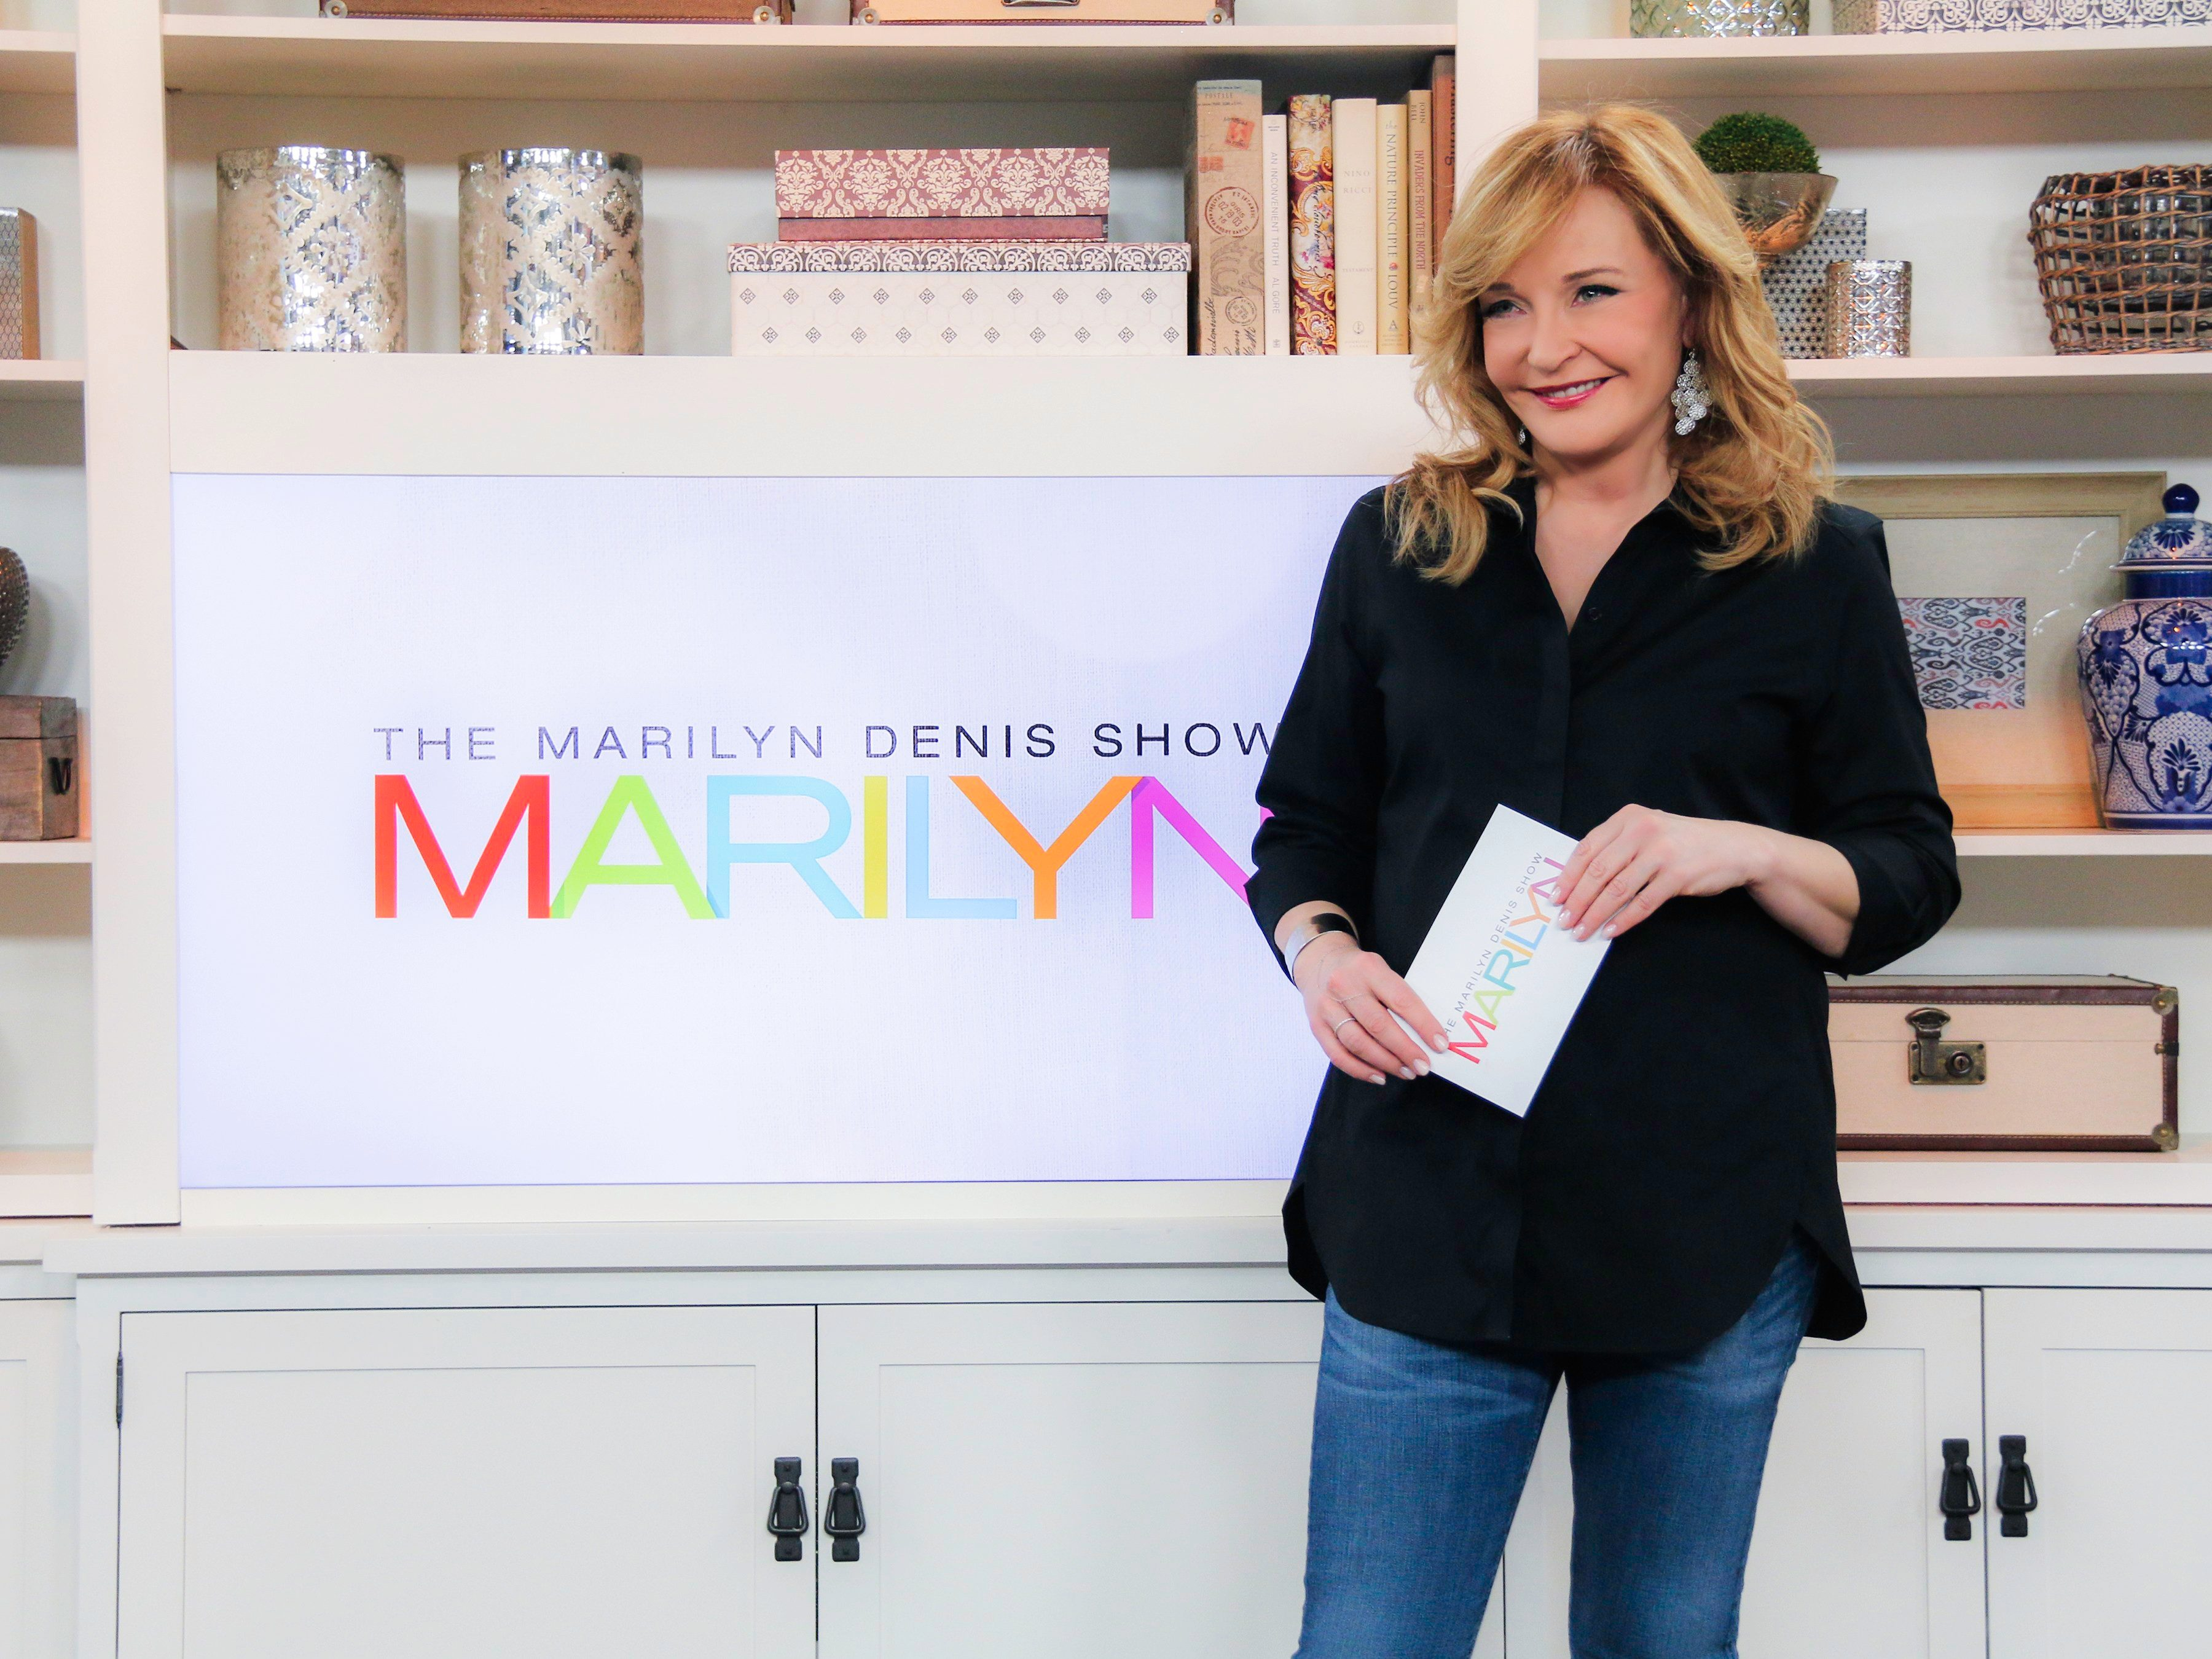 Watch Reader 39 S Digest On The Marilyn Denis Show